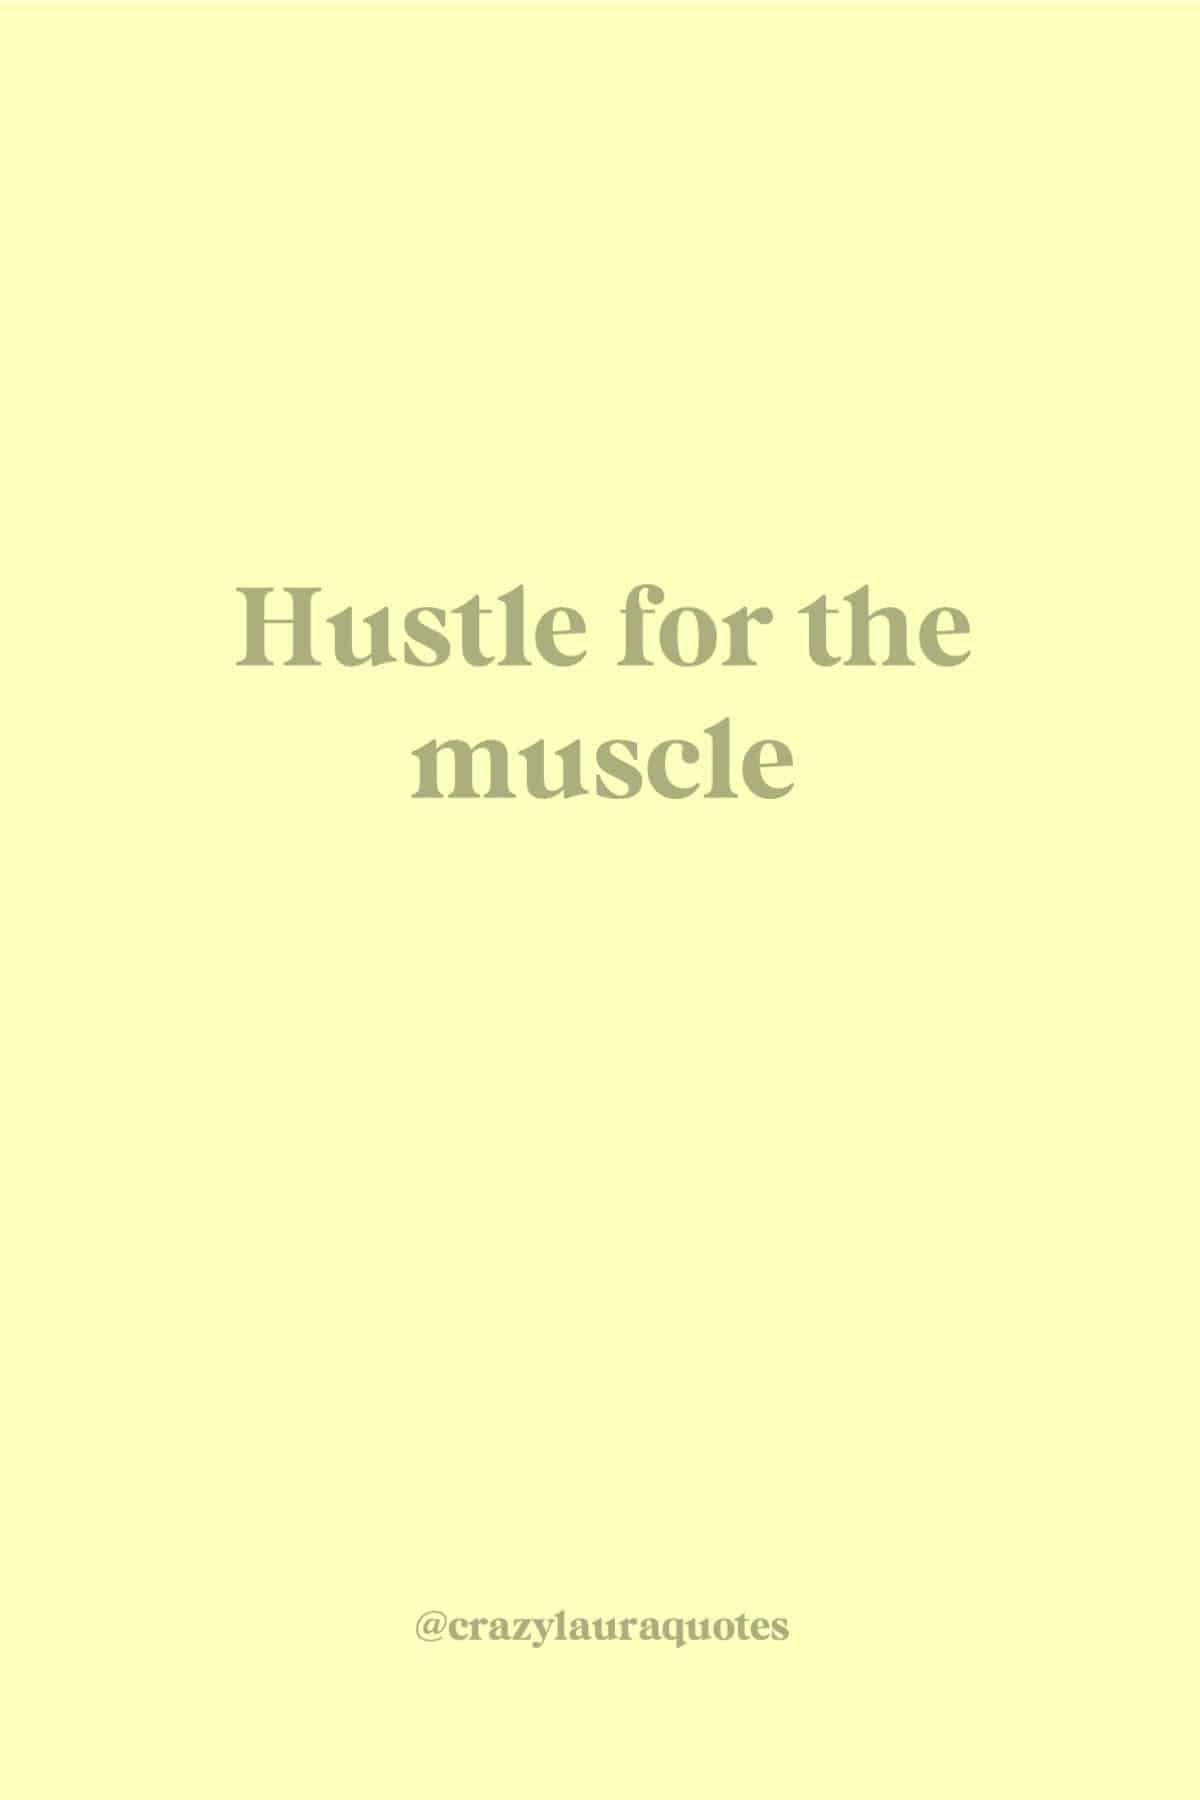 short hustle for muscle quote to inspire